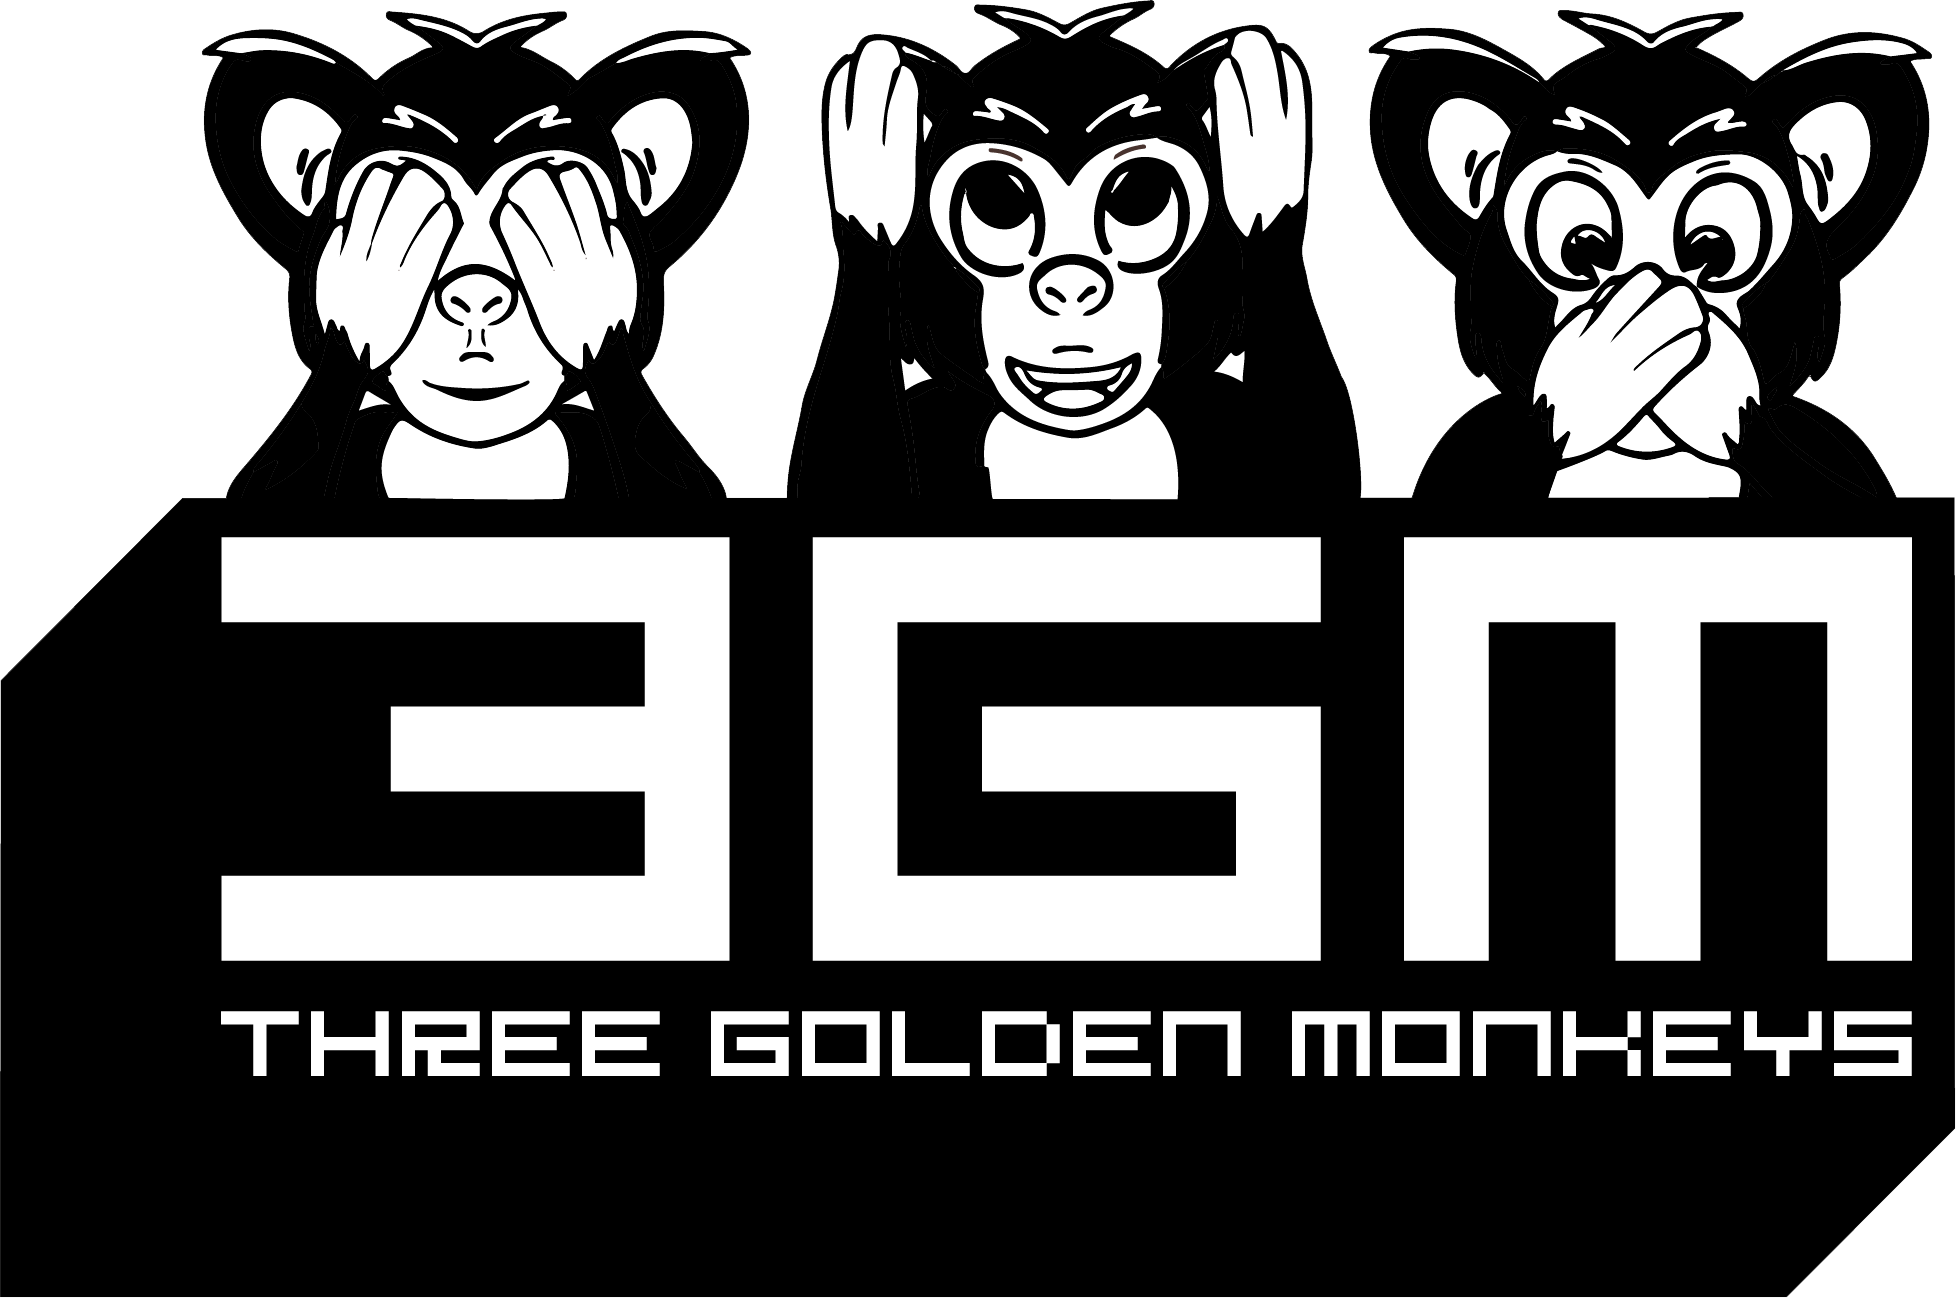 juegos de aviones Archives - Three Golden Monkeys Lab